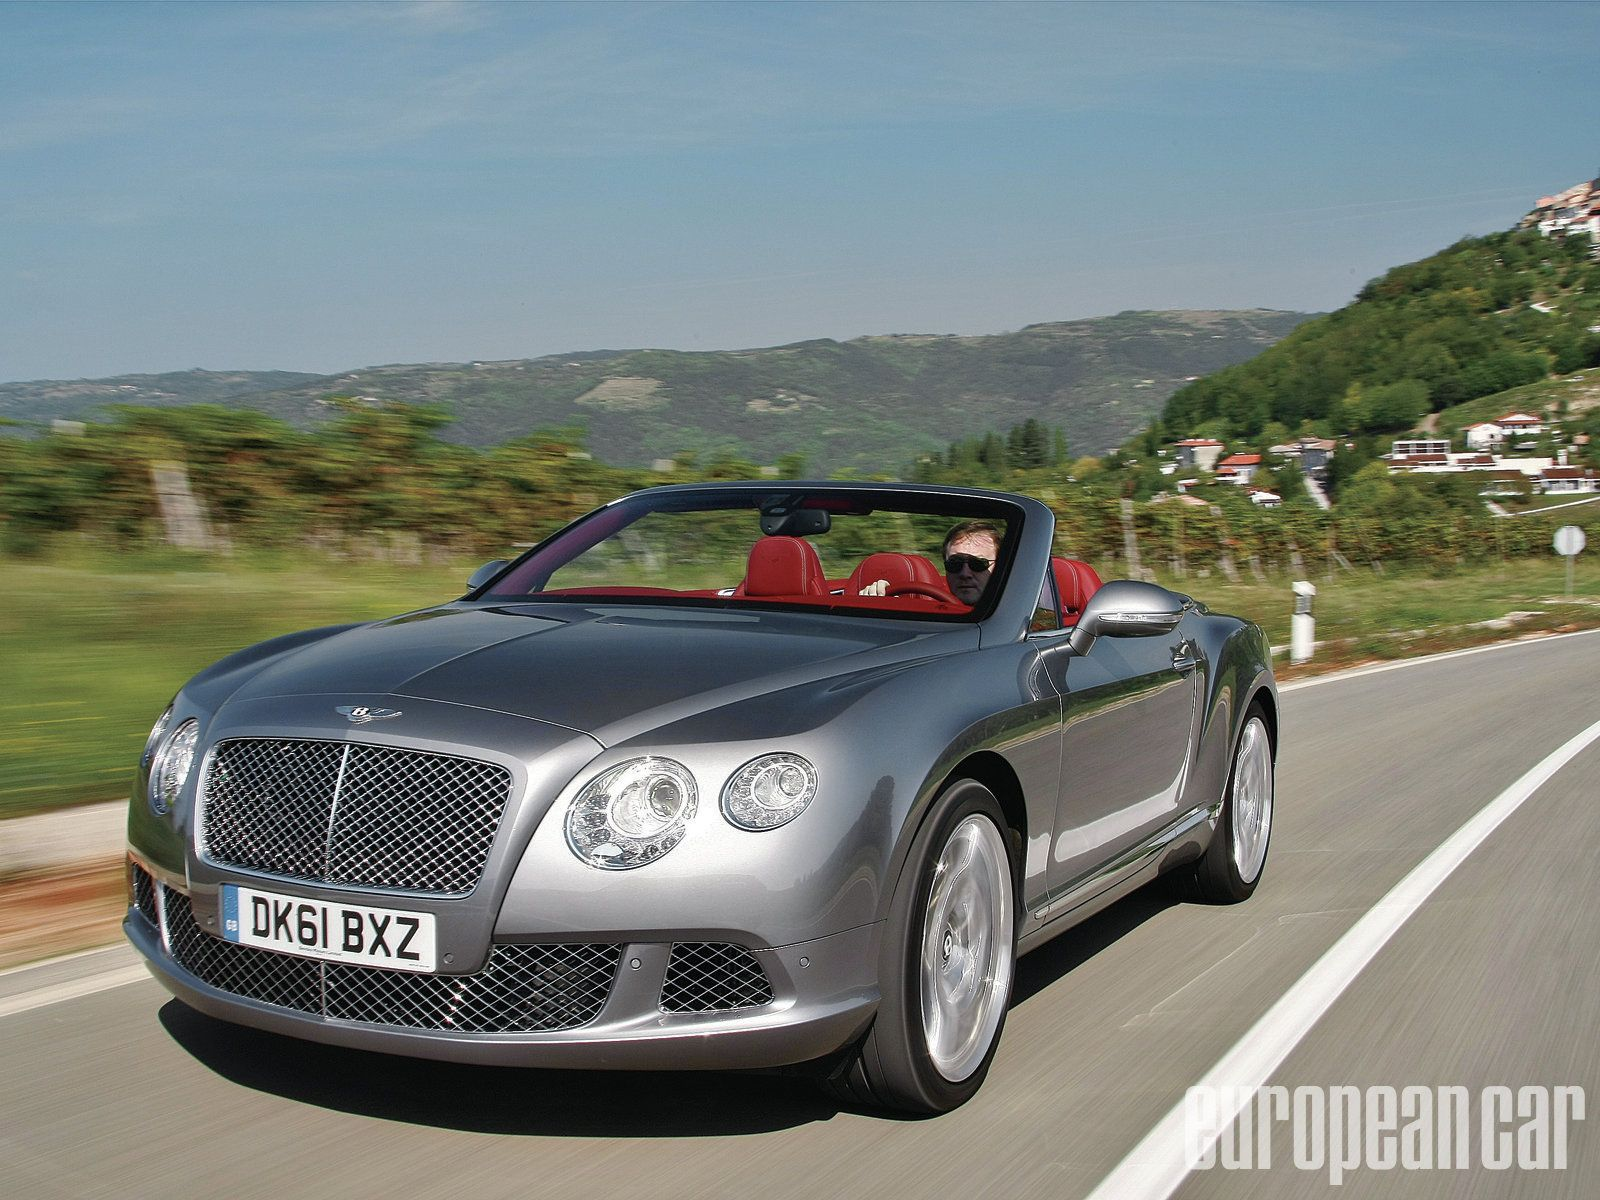 2019 Bentley Continental GTC photo - 3